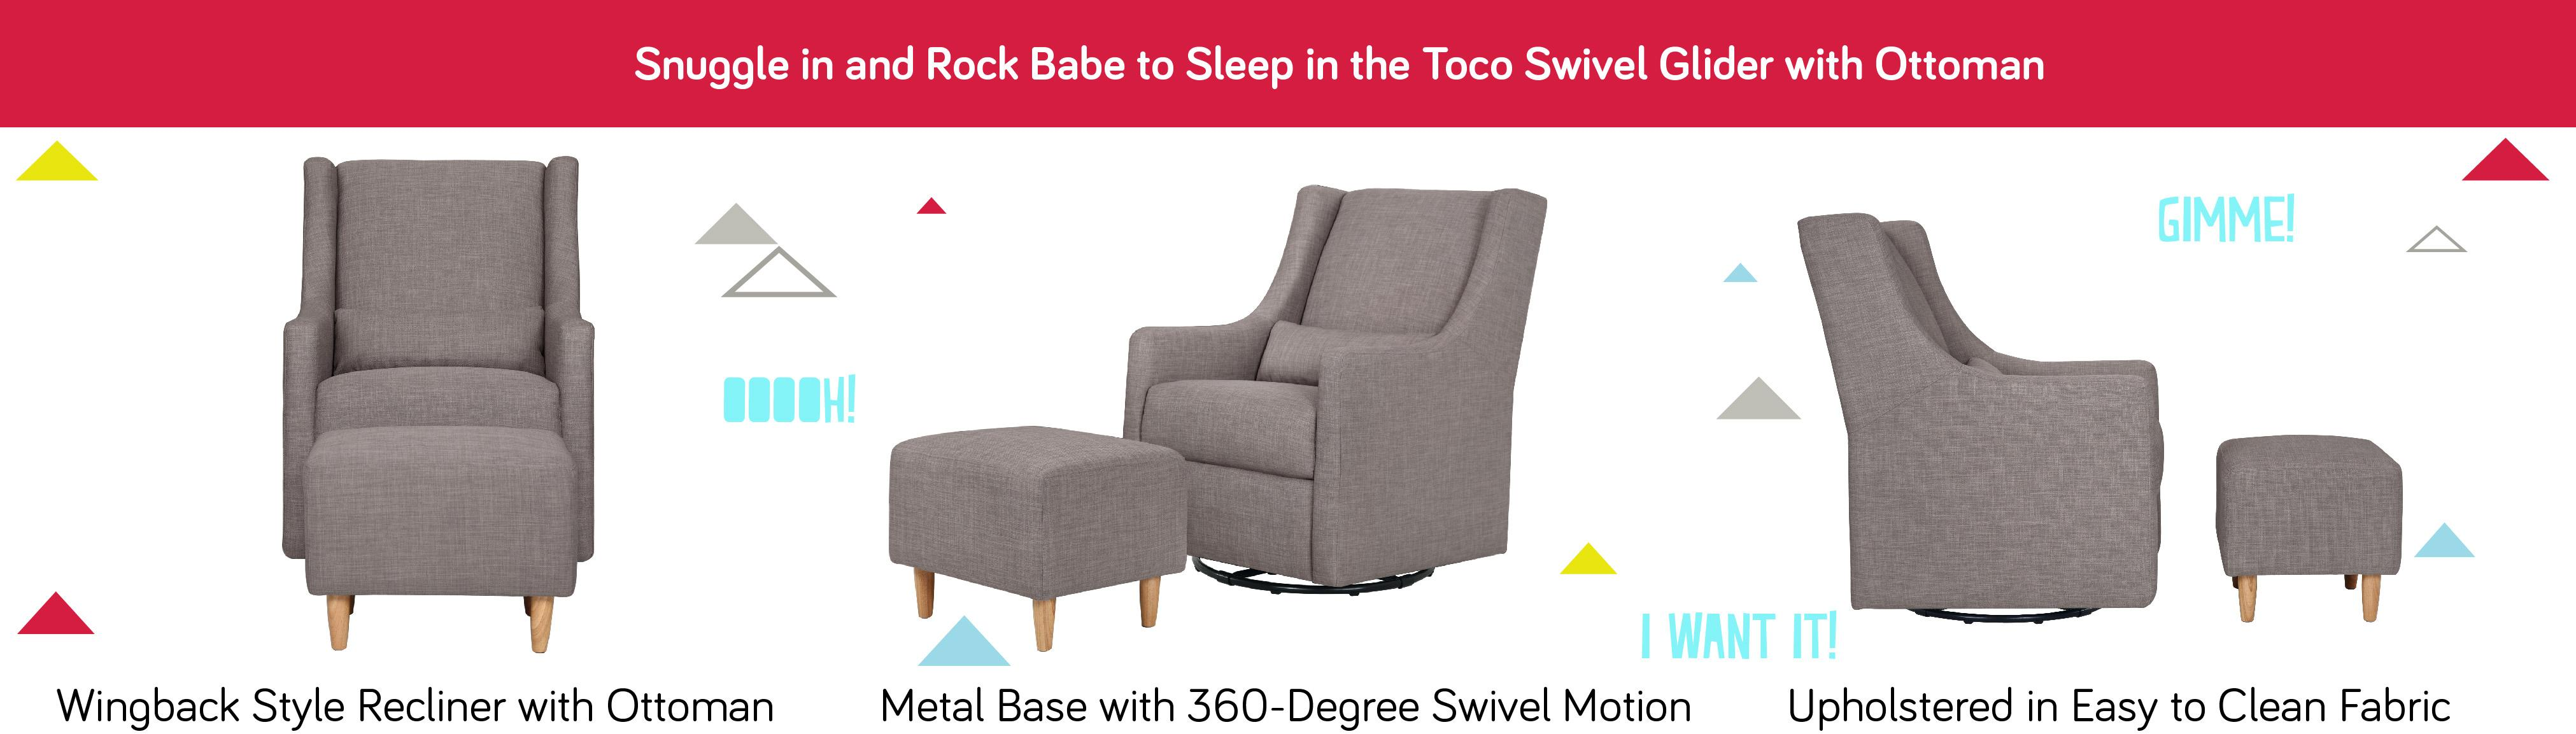 Babyletto Toco Swivel Glider And Stationary Ottoman Grey